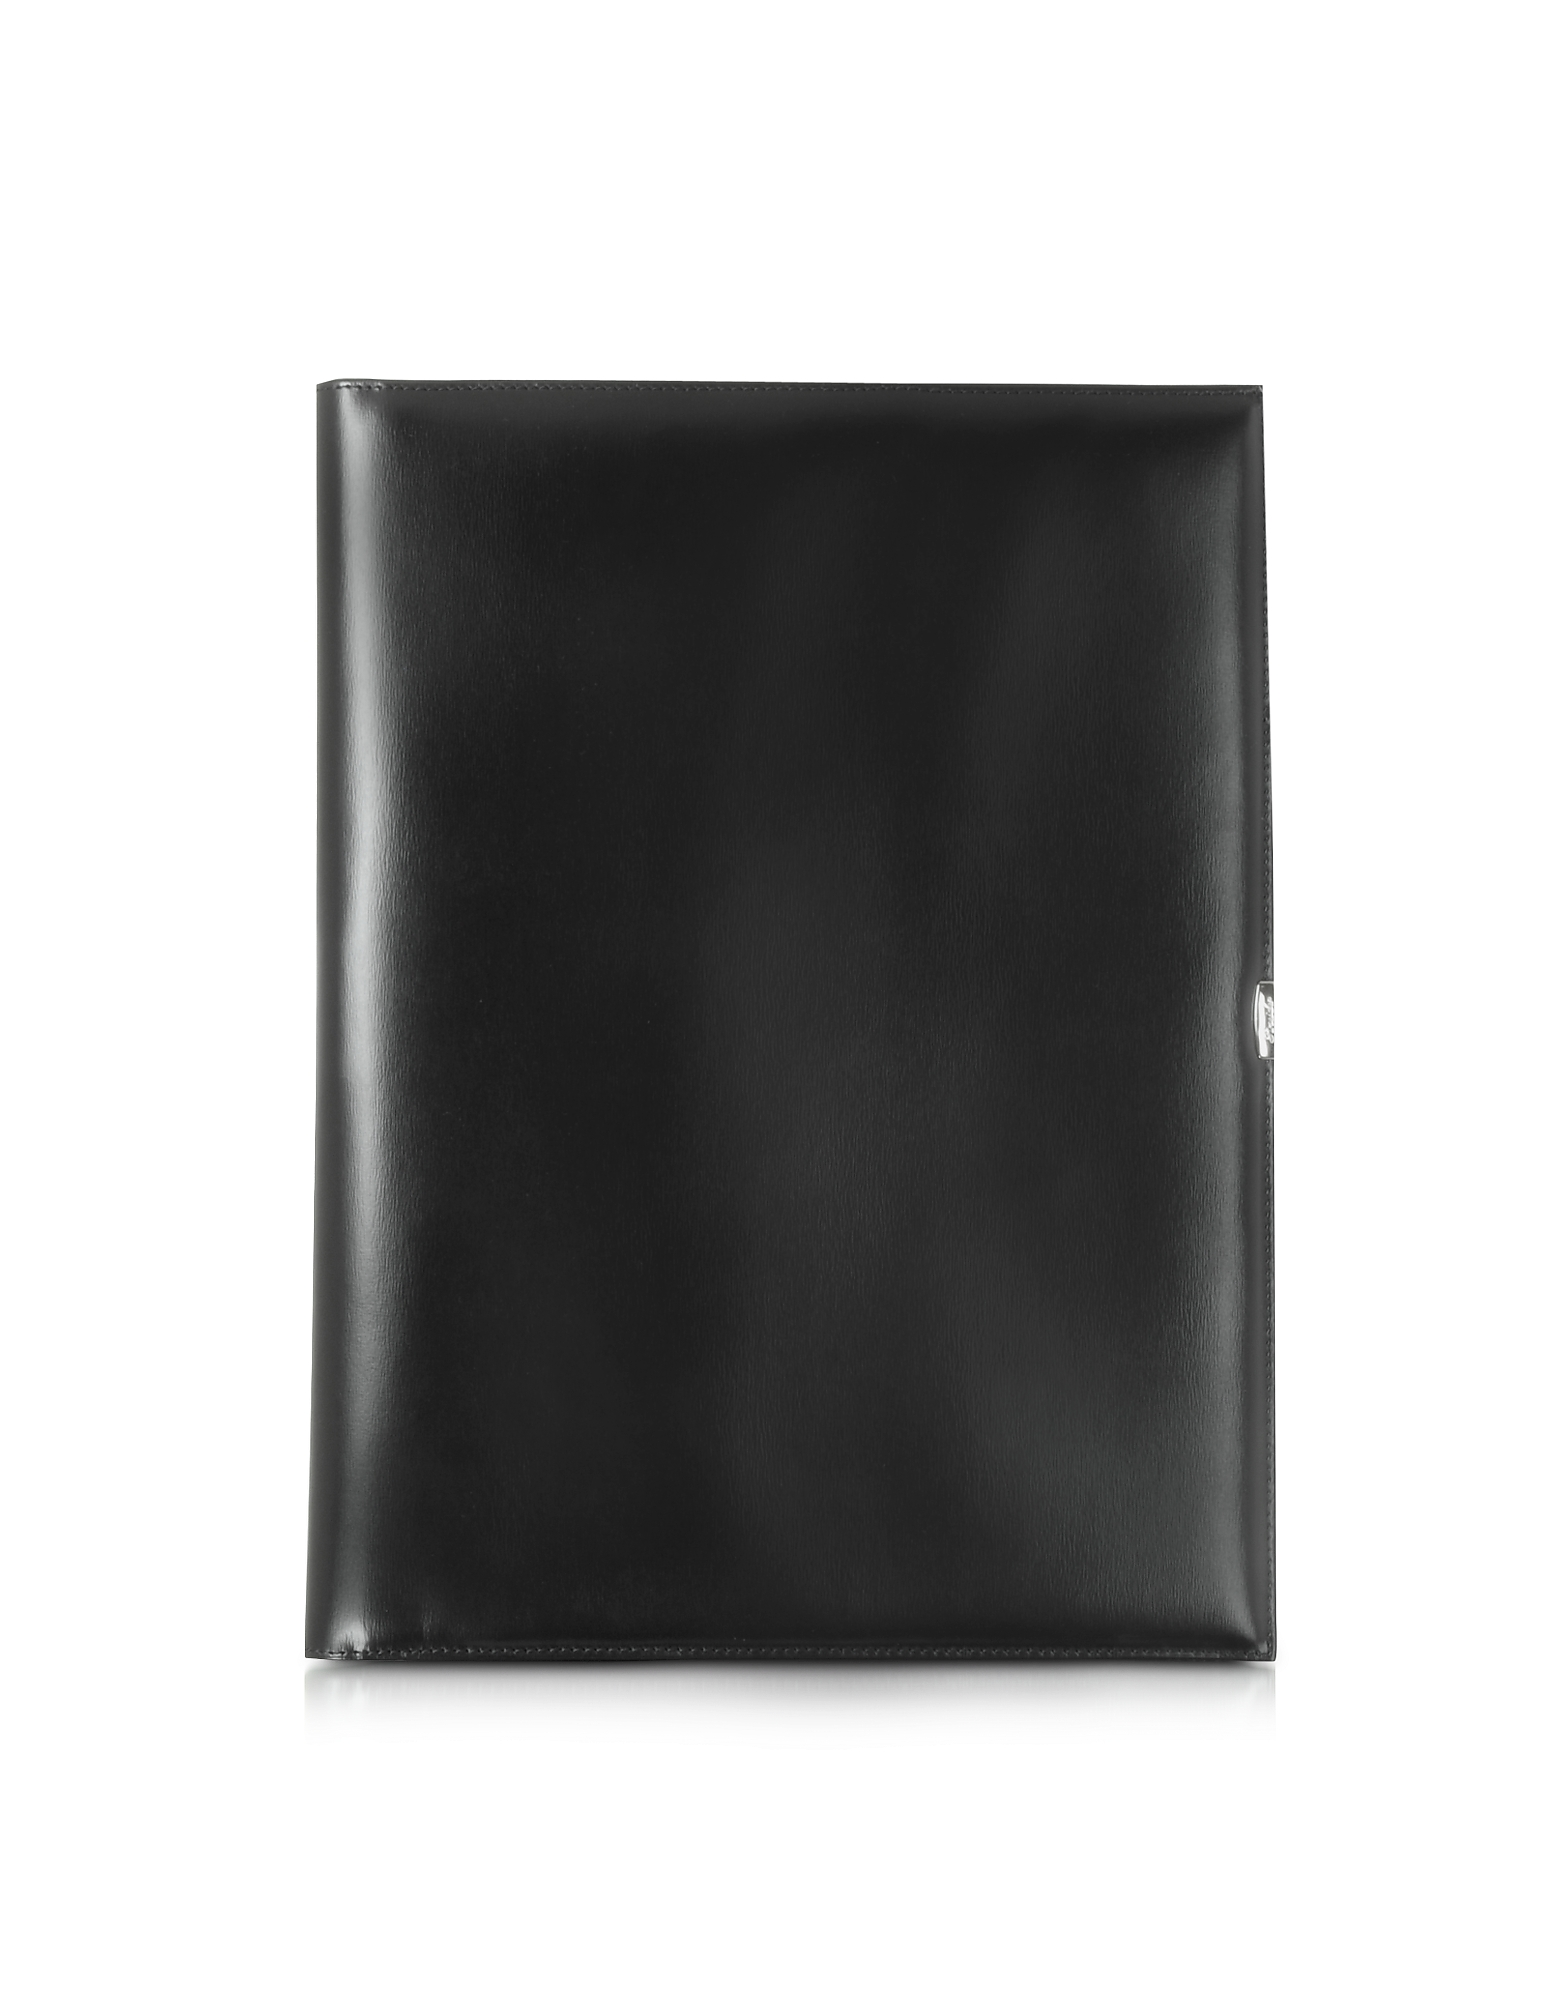 1949 A4 Black Leather Notepad Holder